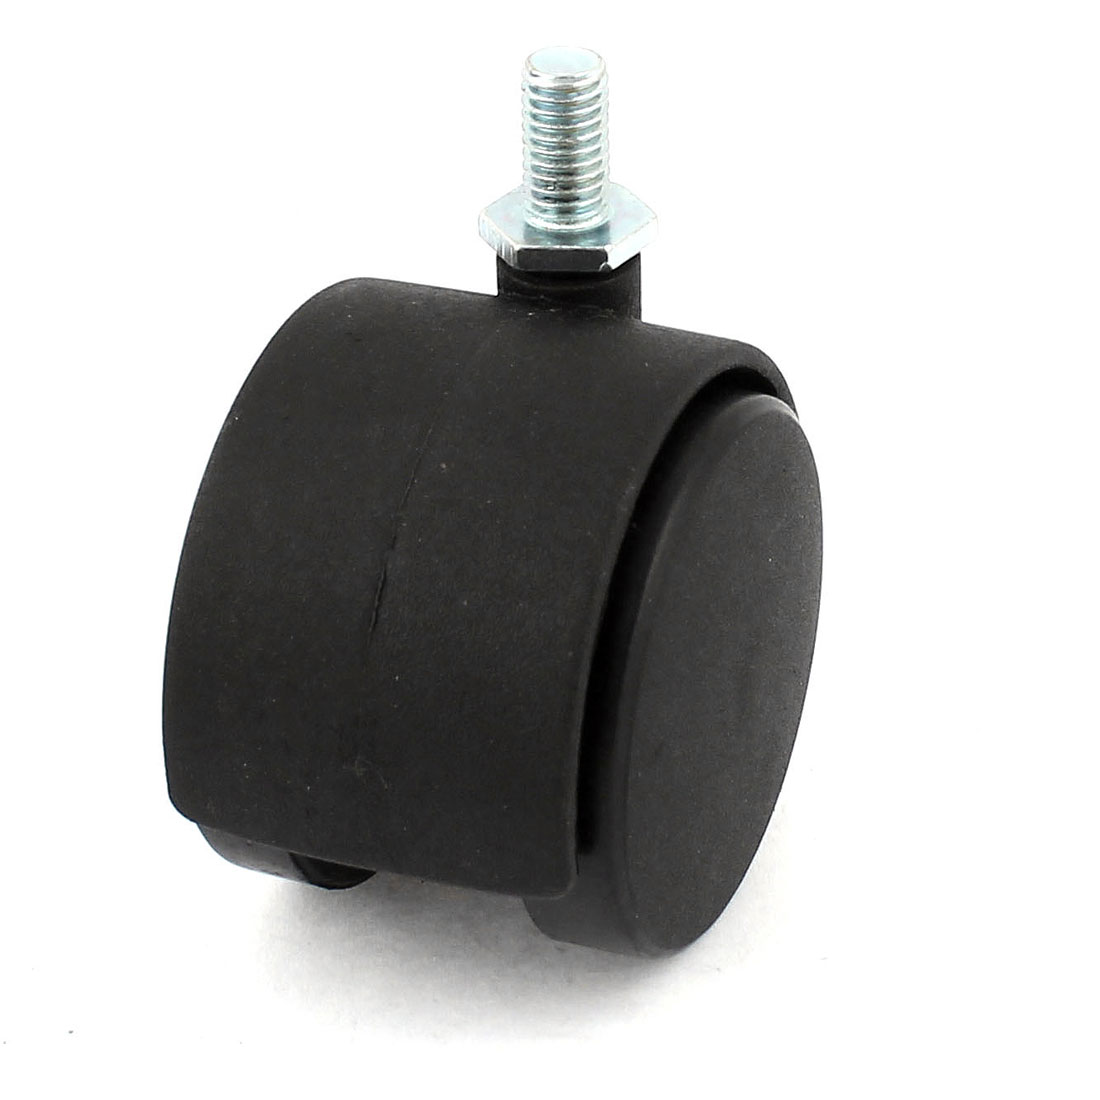 8mm Dia Threaded Stem Connector Twin-wheel Black Chair Trolley Caster